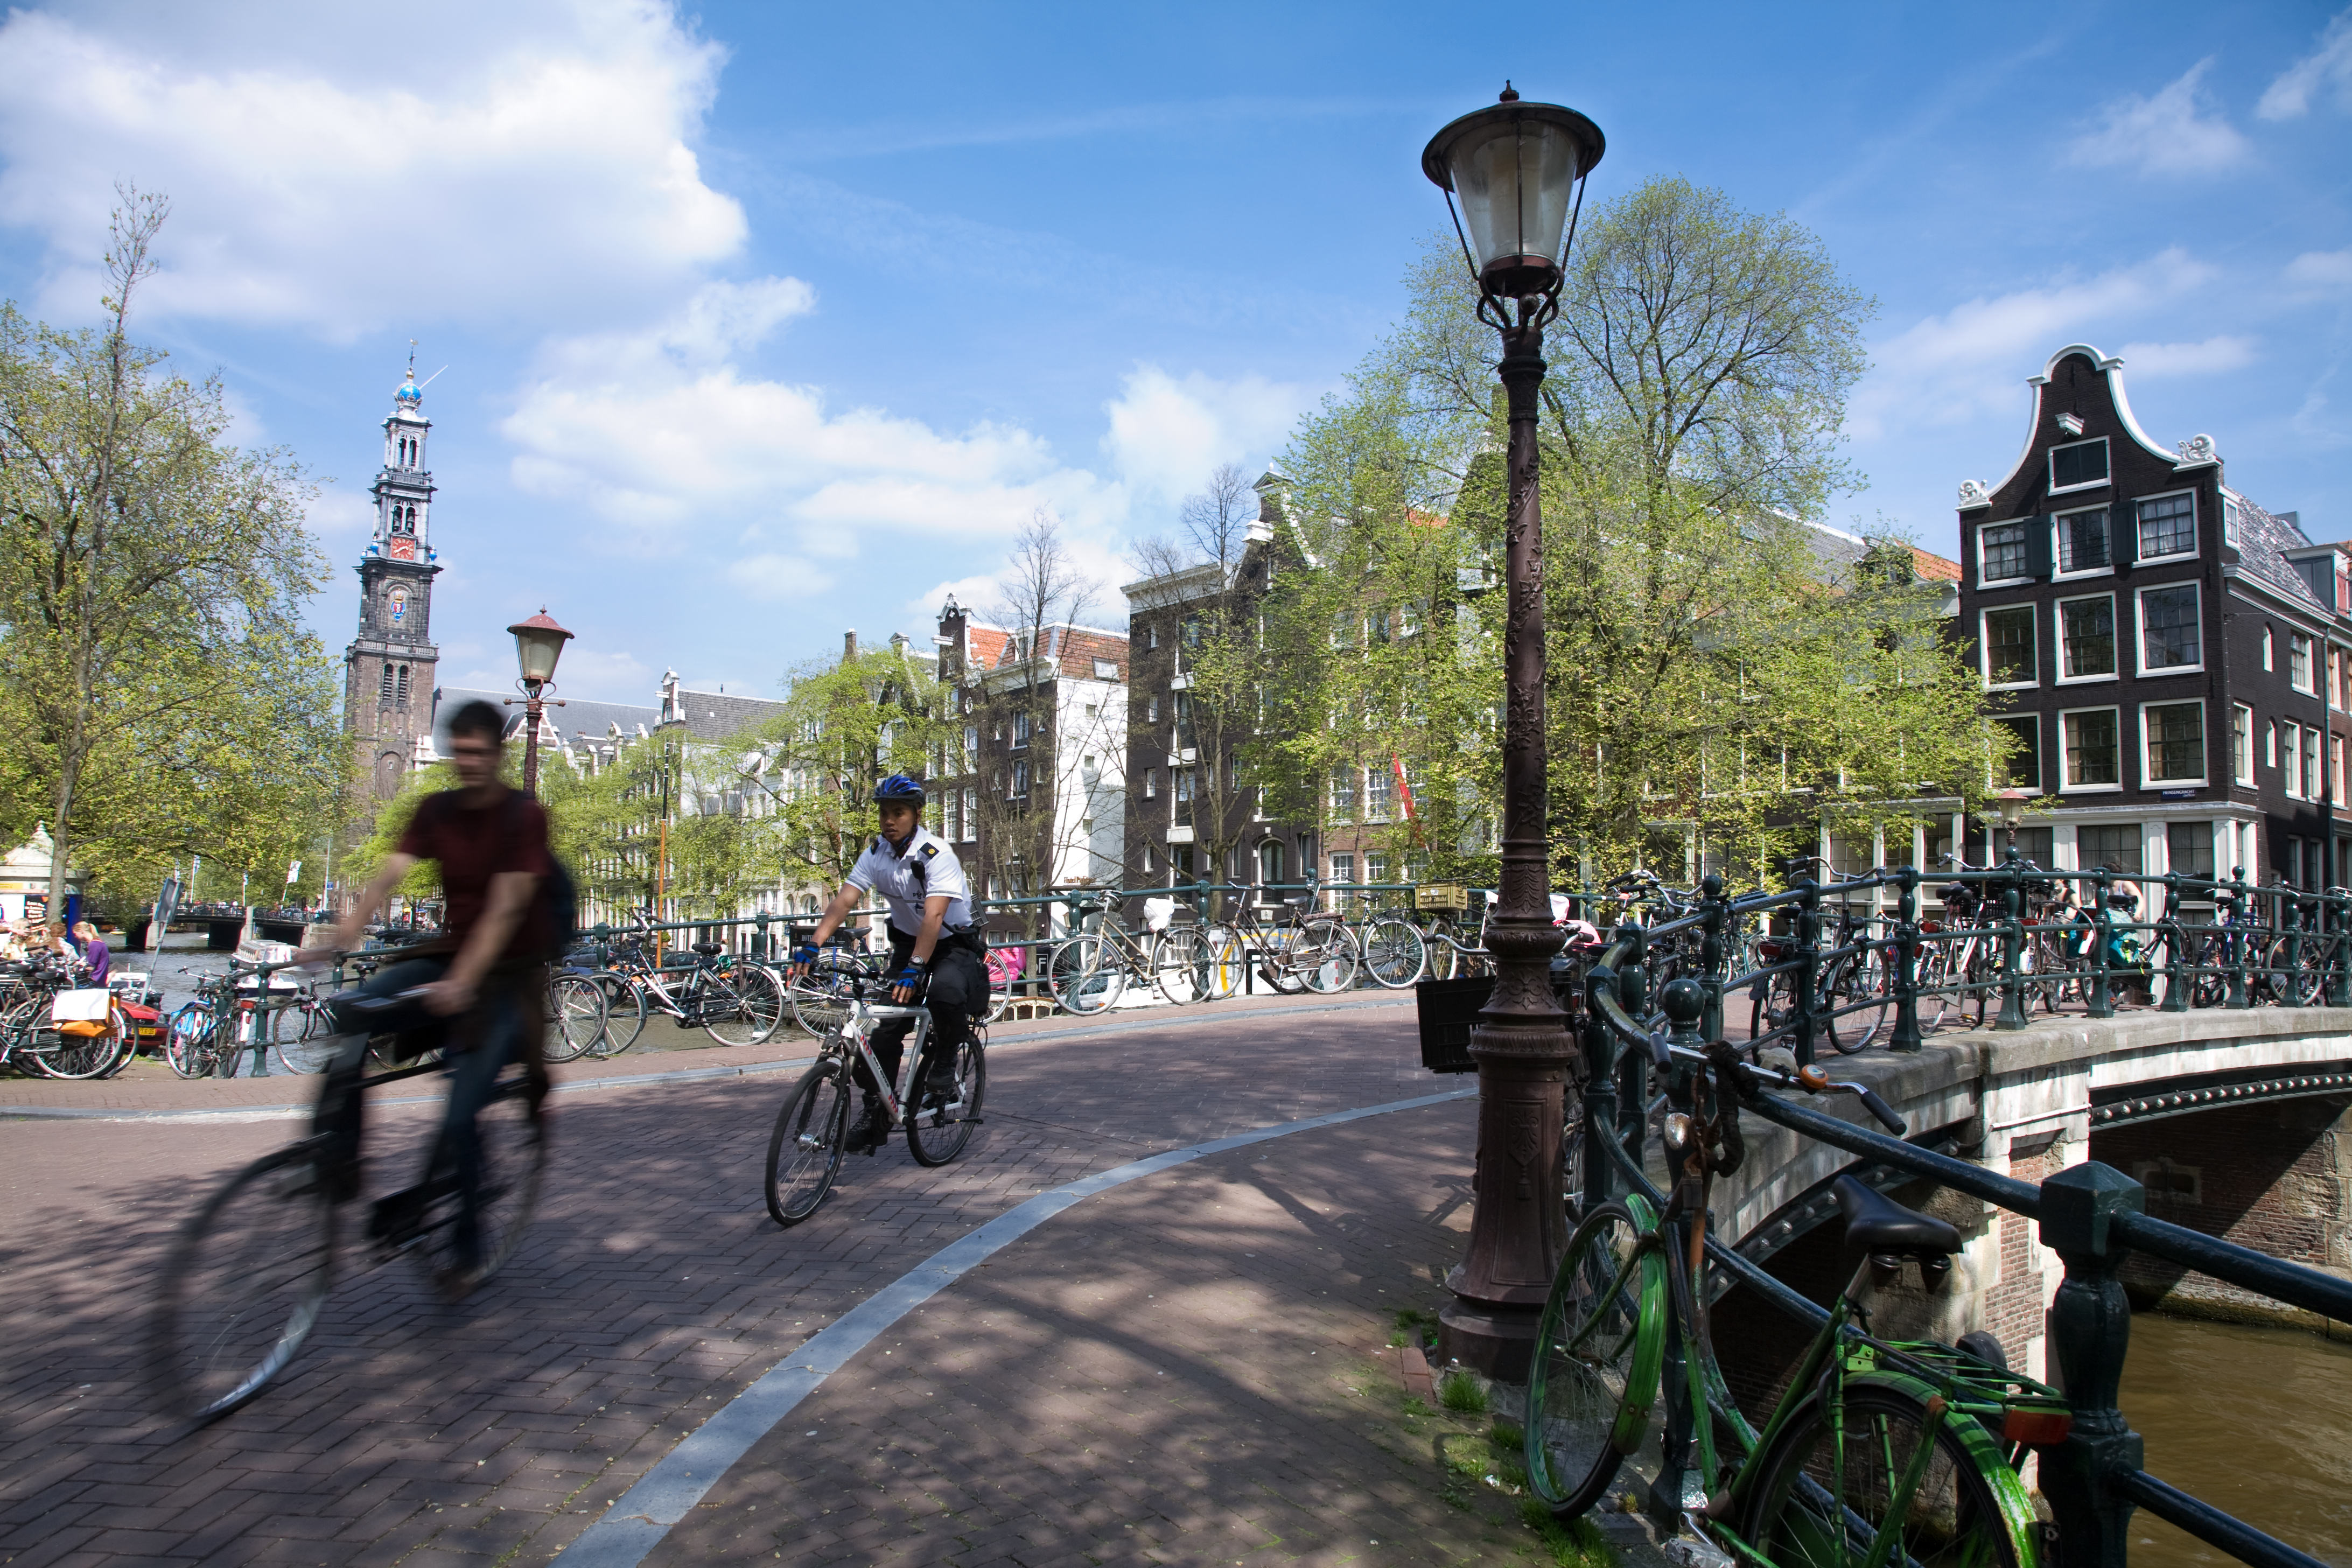 http://upload.wikimedia.org/wikipedia/commons/f/fa/Amsterdam_-_Bicycles_-_1058.jpg